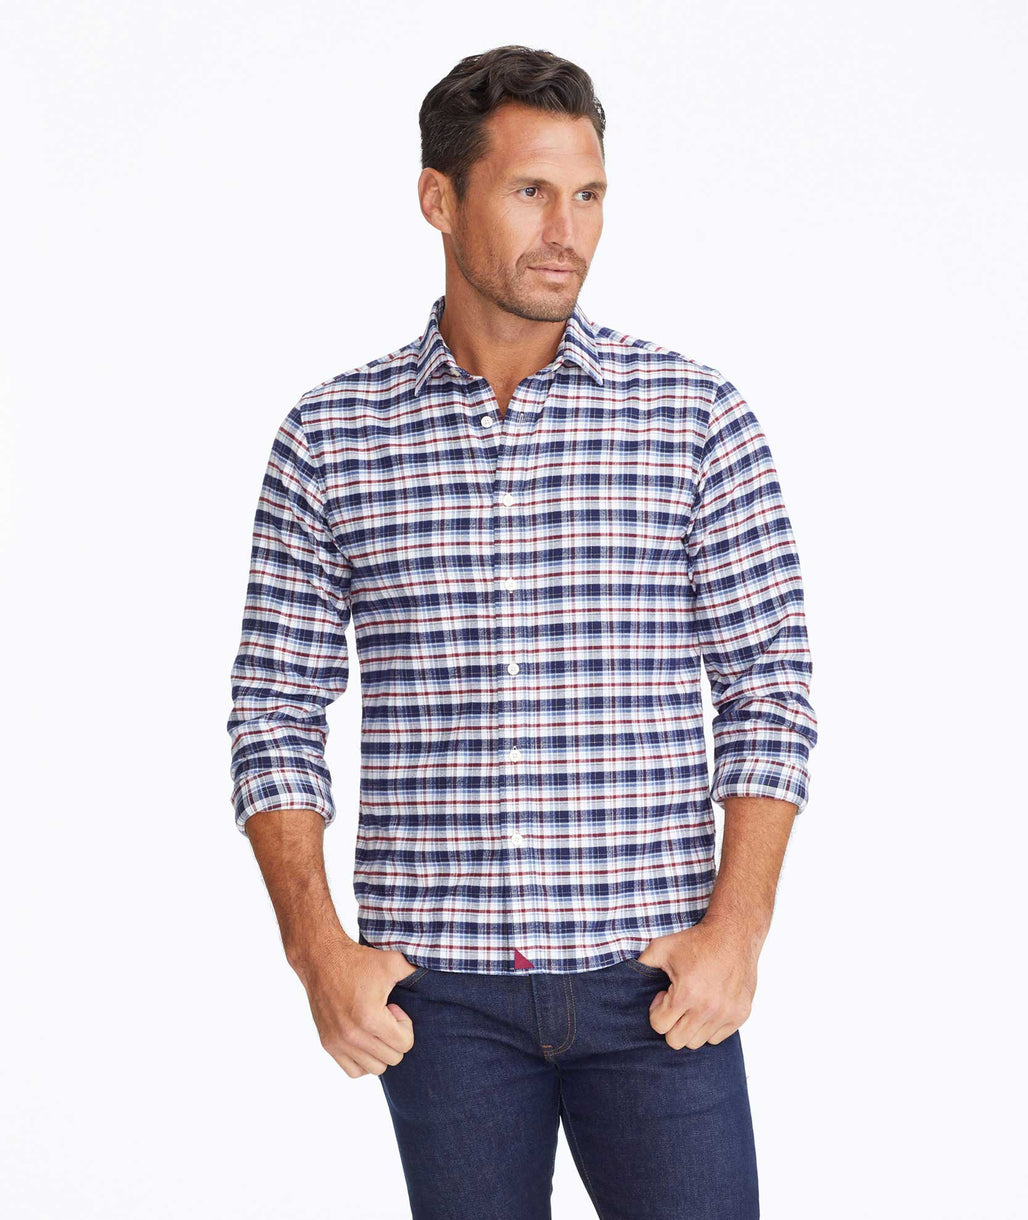 Model wearing a Blue Flannel Kaesler Shirt